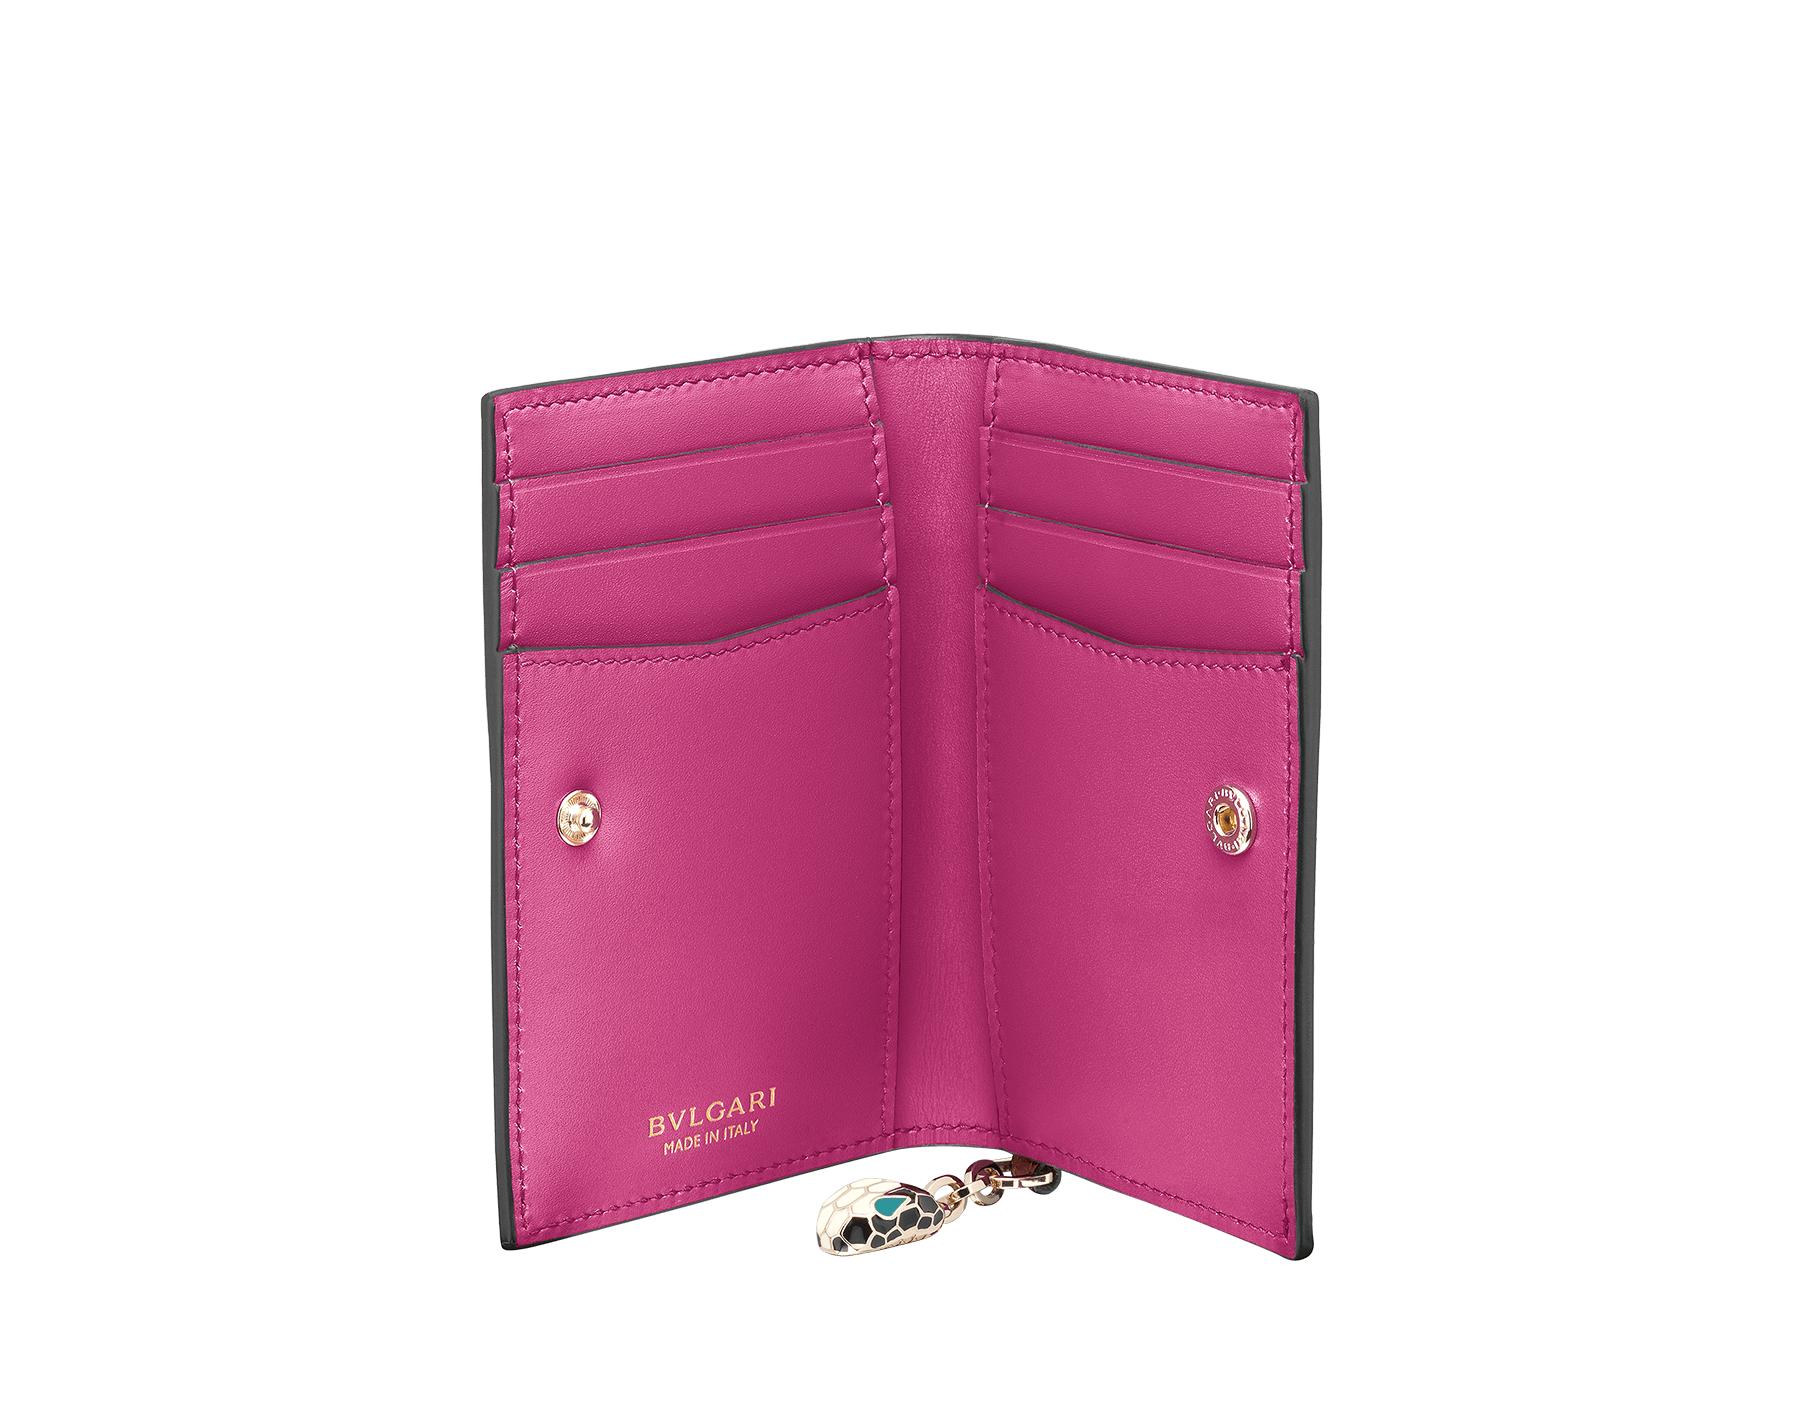 Serpenti Forever folded credit card holder in Roman garnet and pink spinel calf leather. Snakehead charm with black and white enamel, and green malachite enamel eyes. SEA-CC-HOLDER-FOLD-CLb image 2